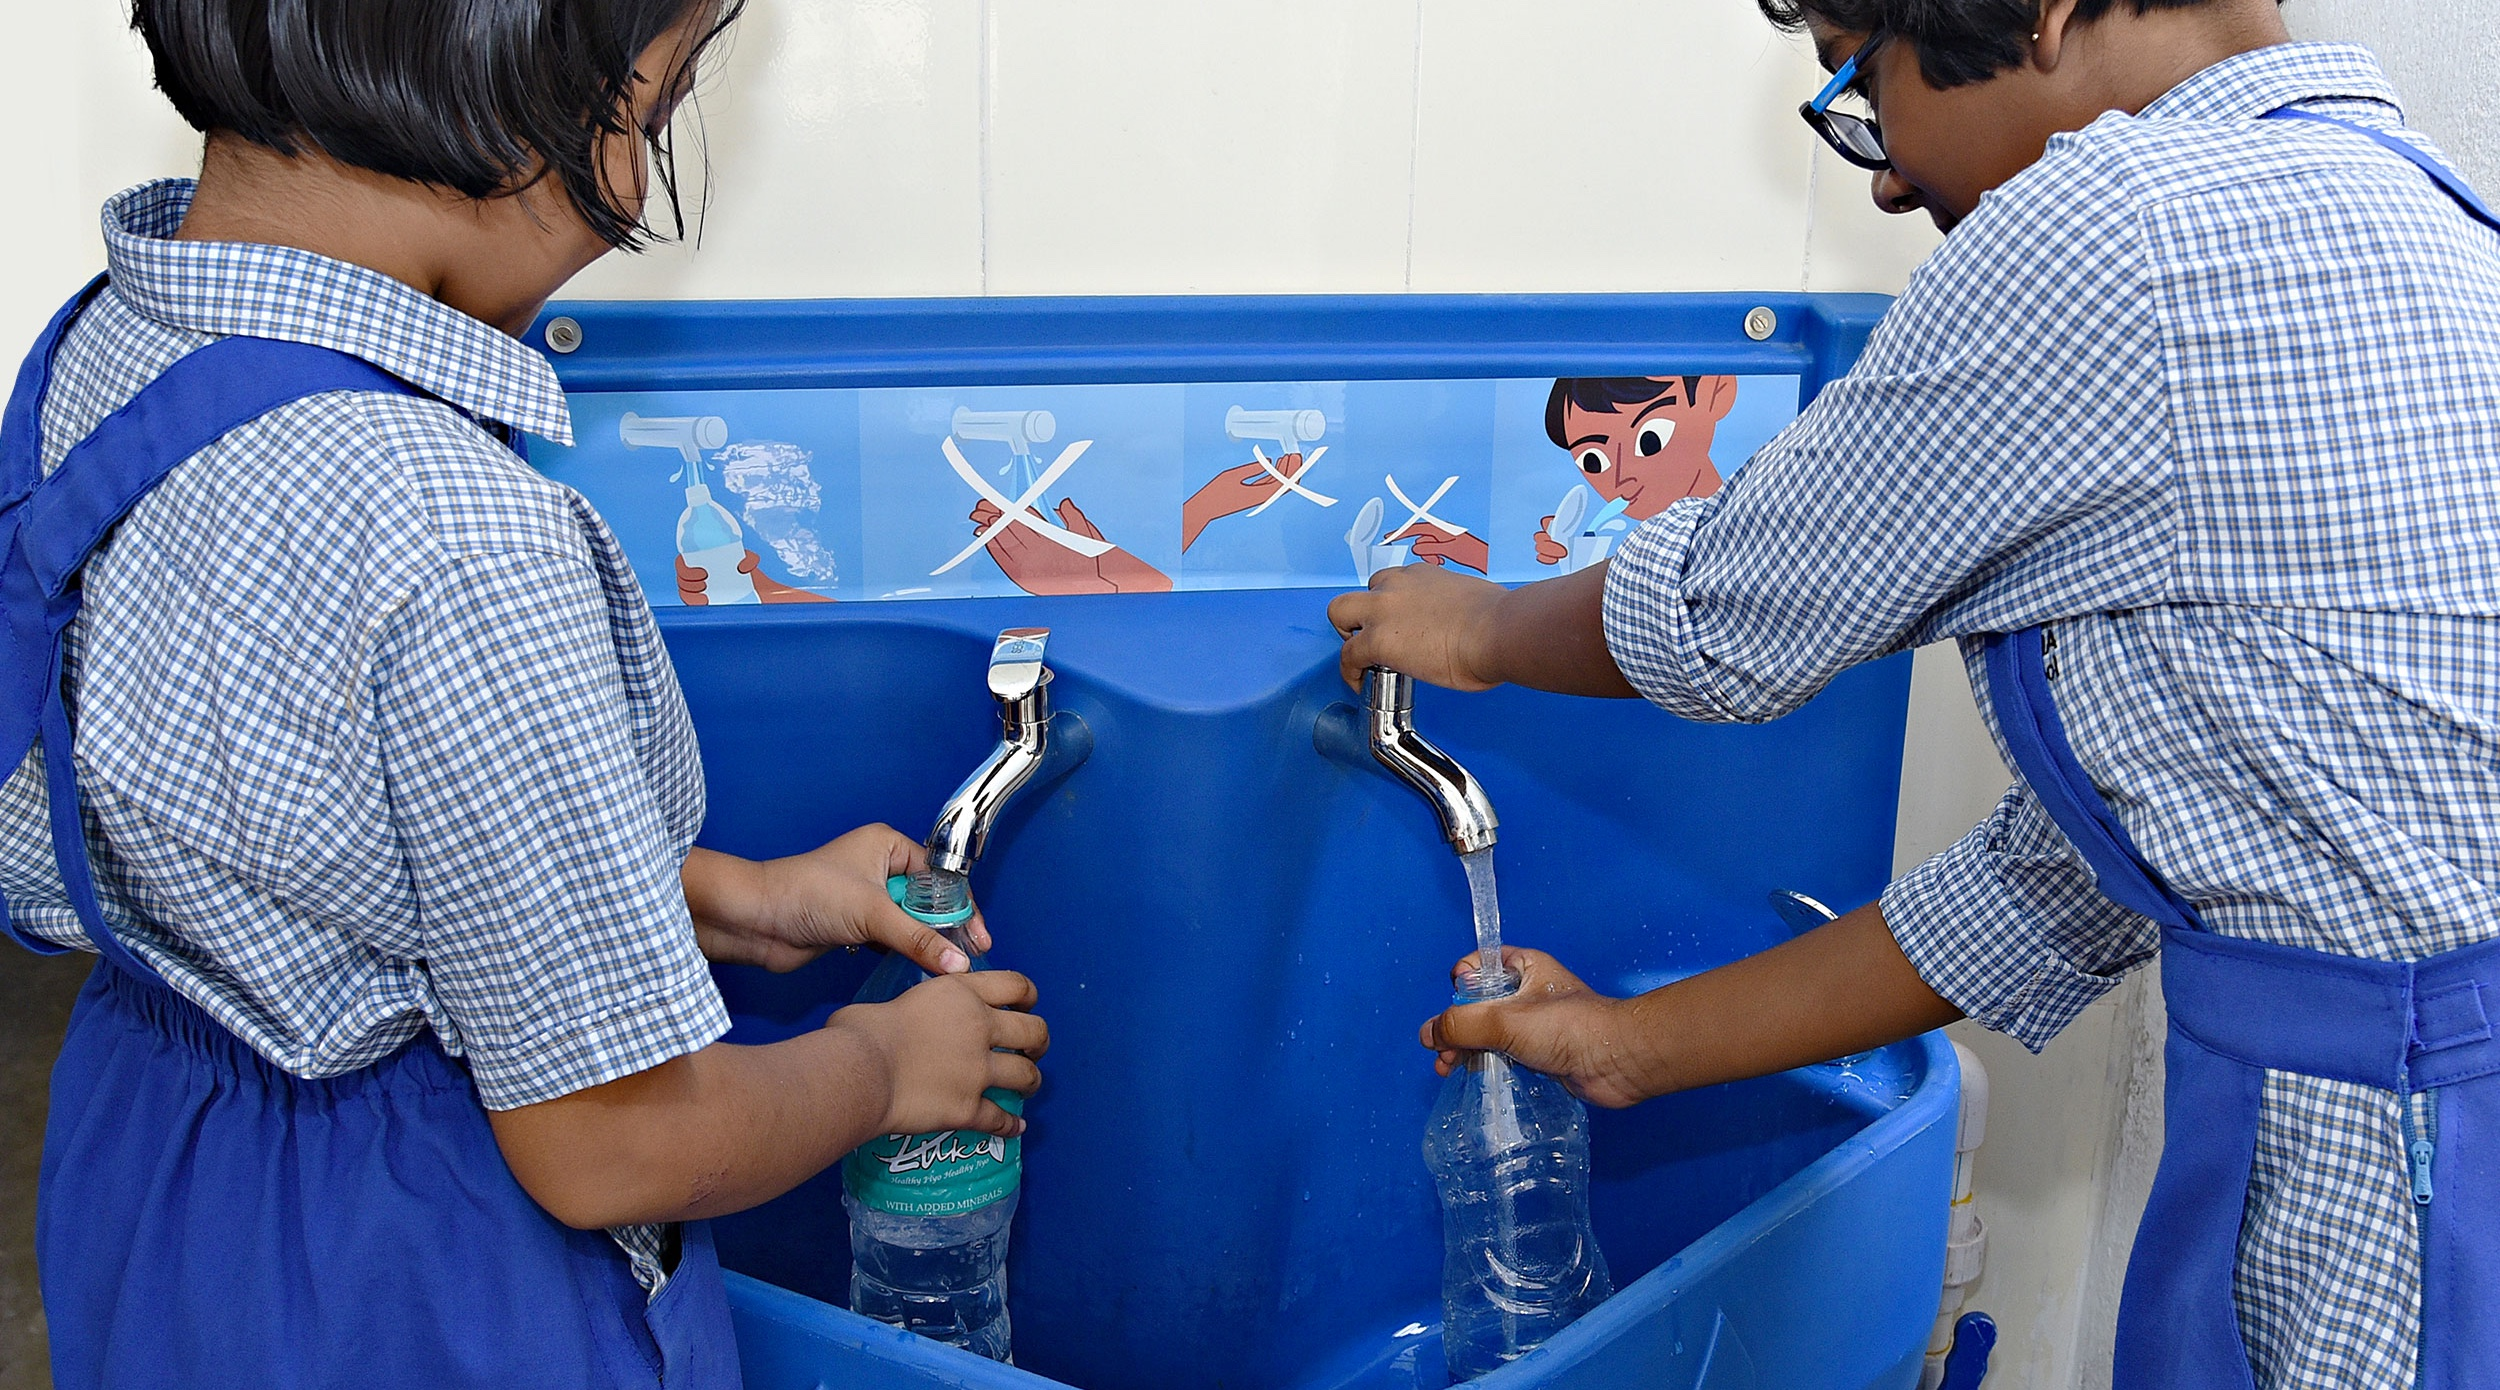 Two children filling up water bottles.